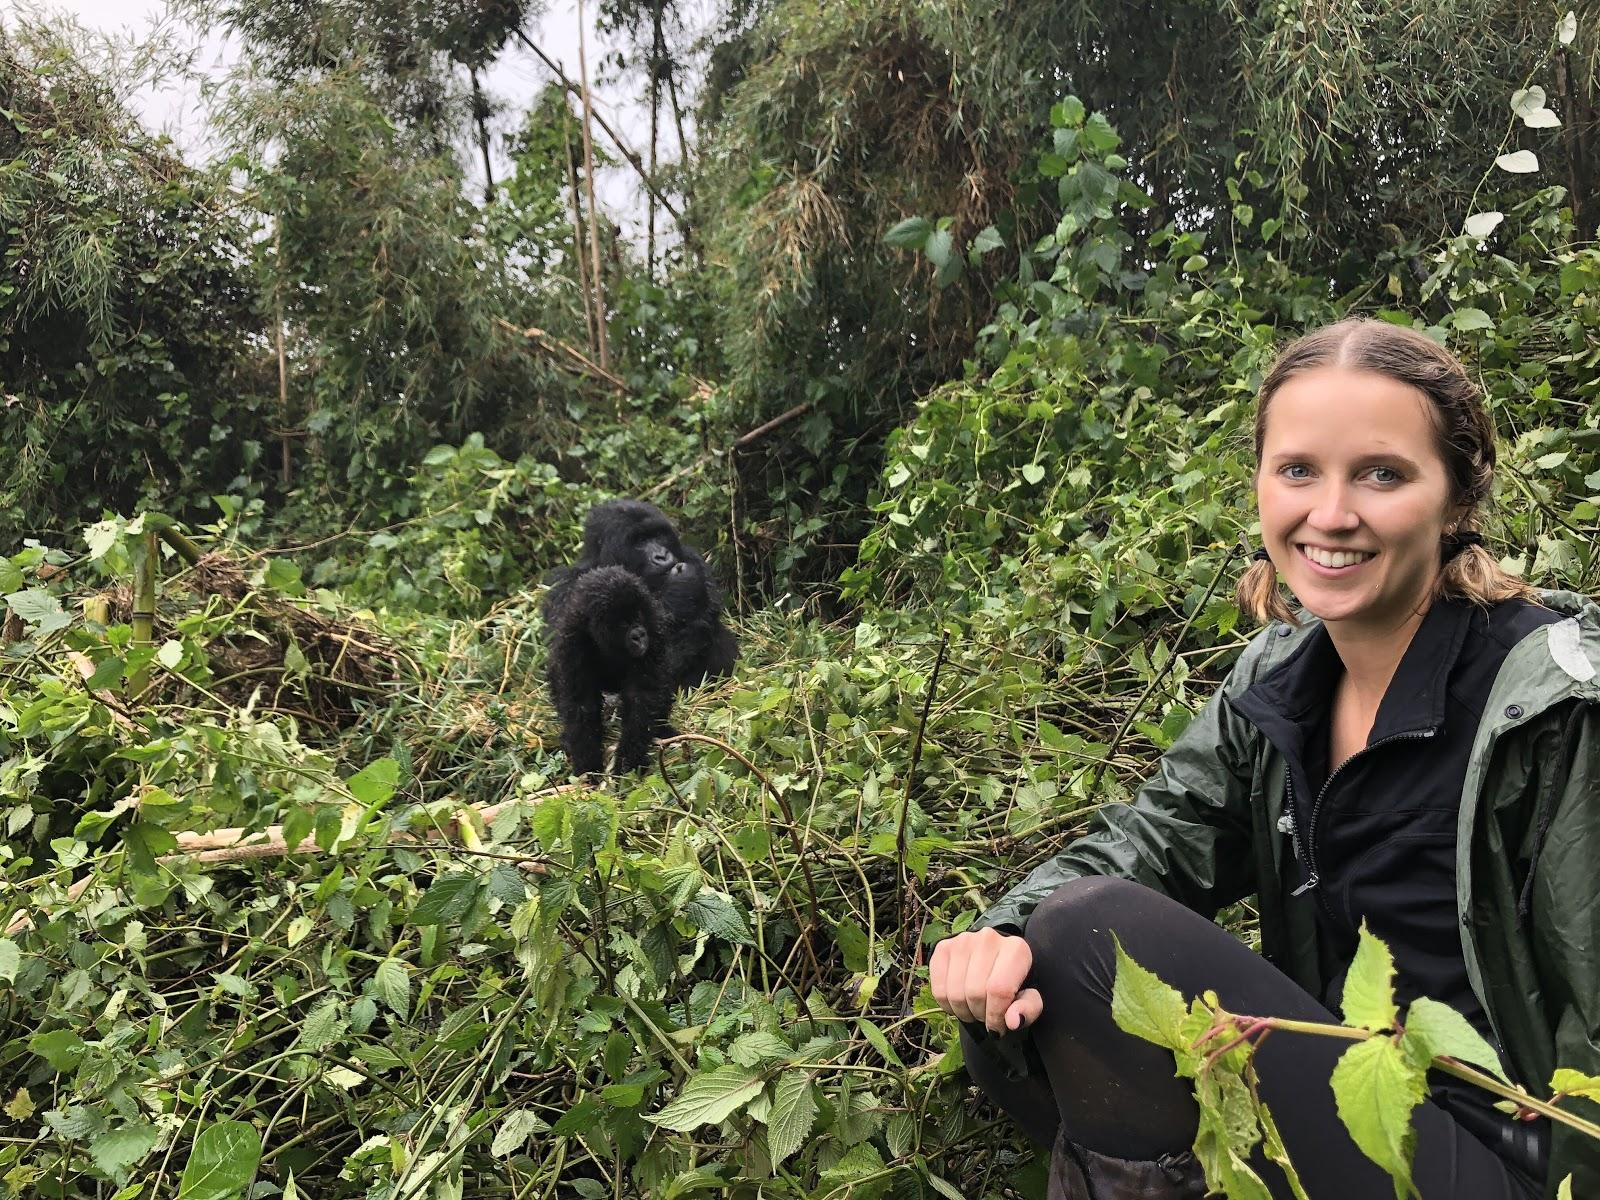 woman sits with gorilla in background